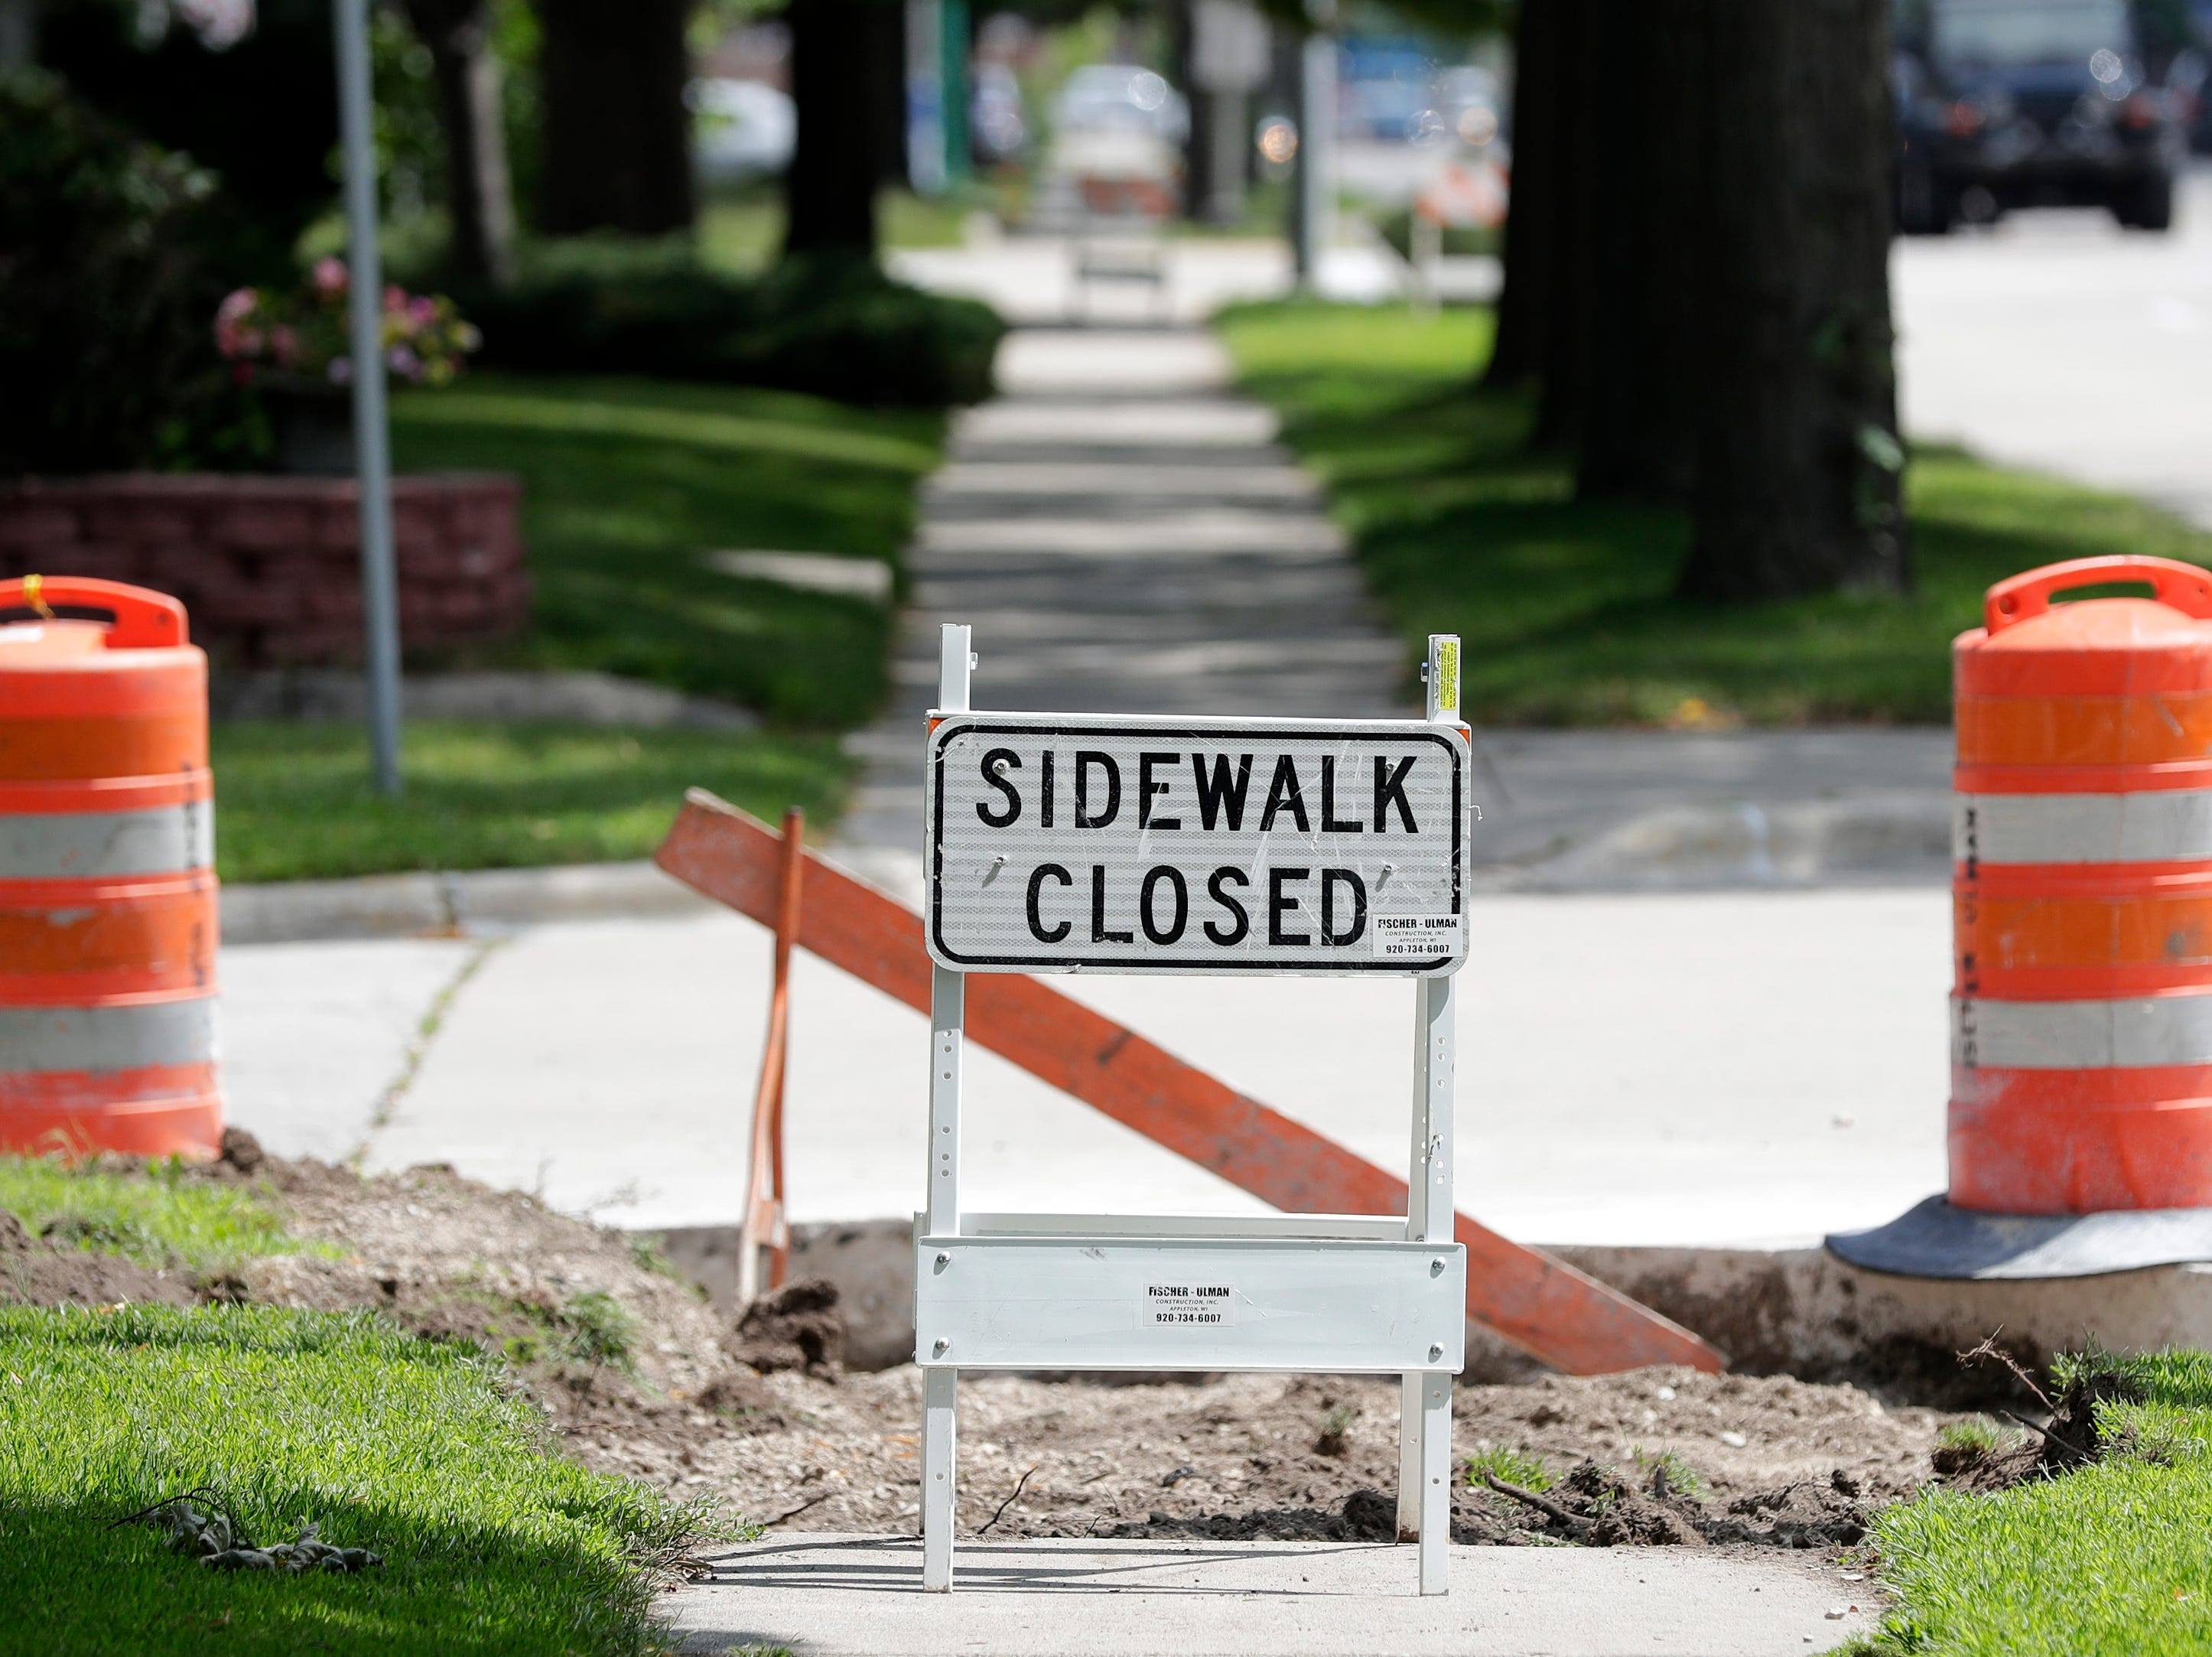 Who's responsible for bad sidewalks in Green Bay?